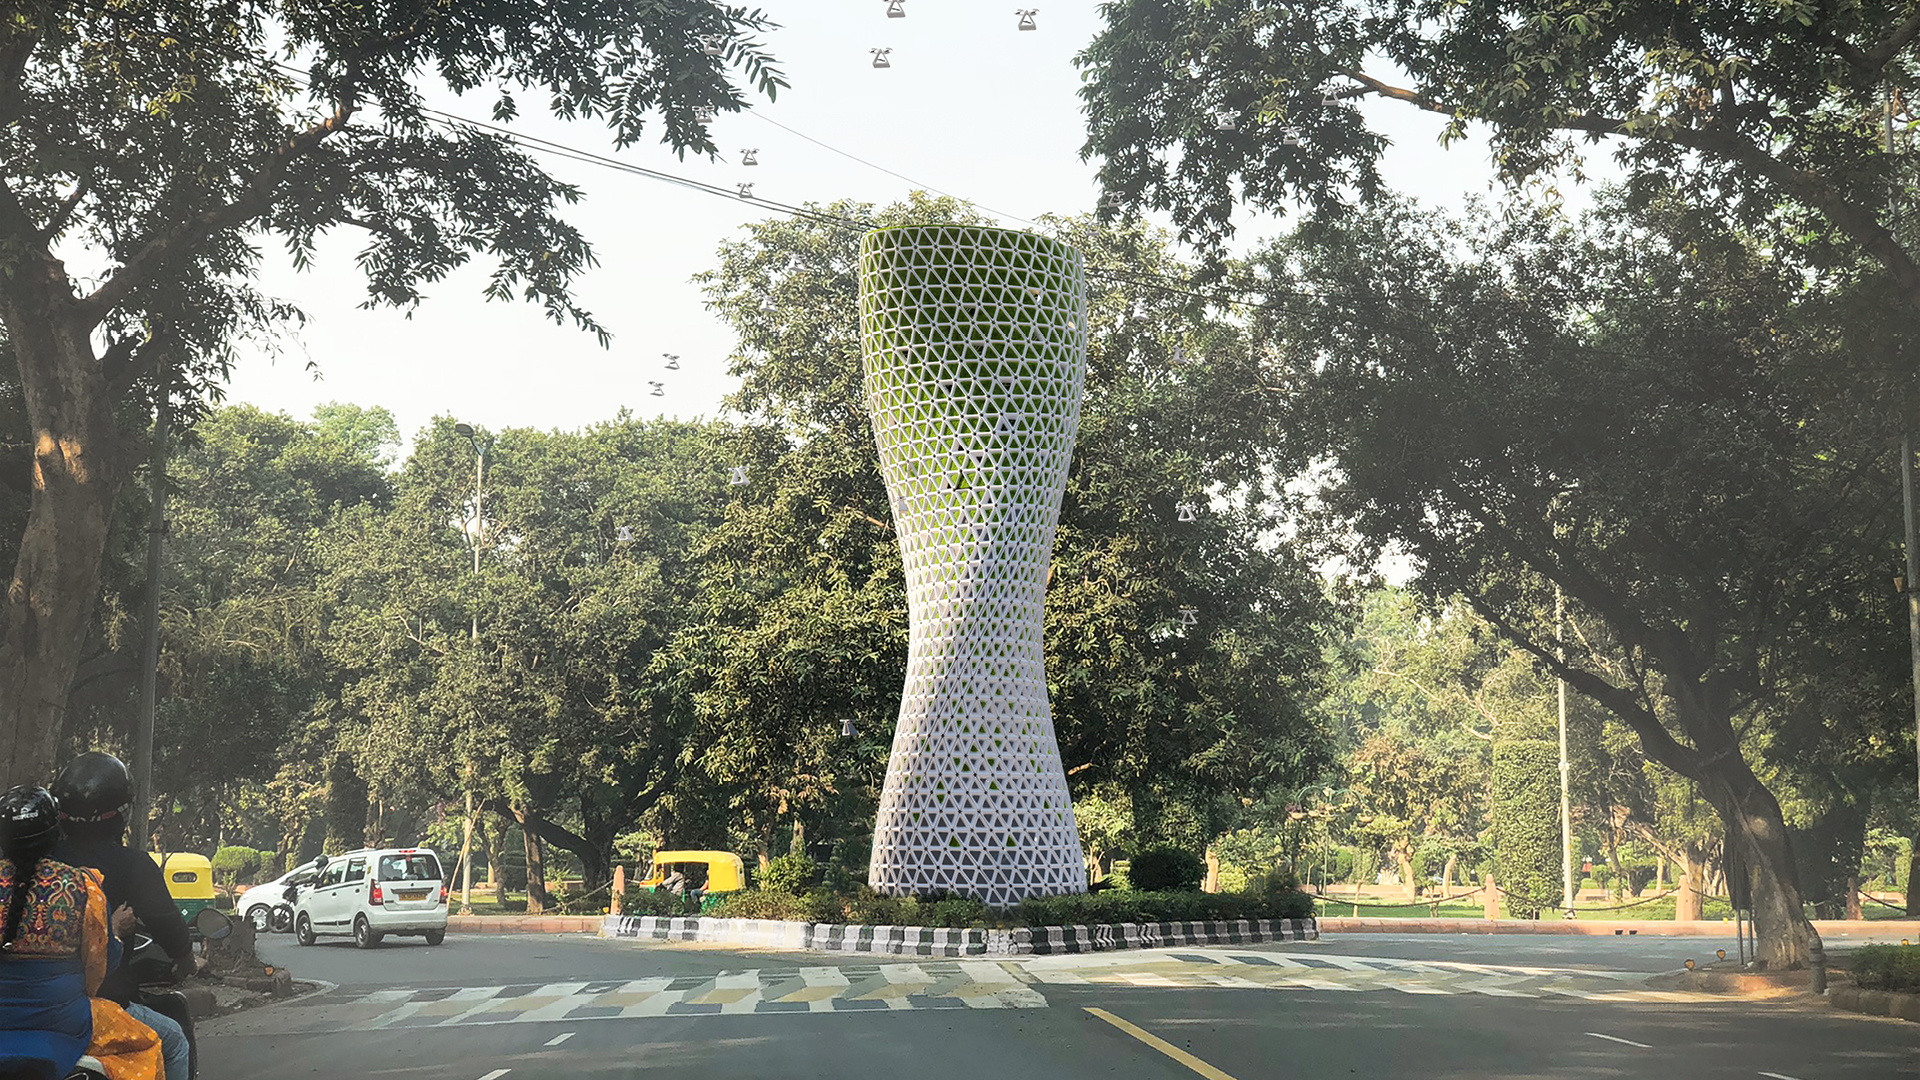 Breathing lungs for Delhi: Aũra towers and drones by Studio Symbiosis